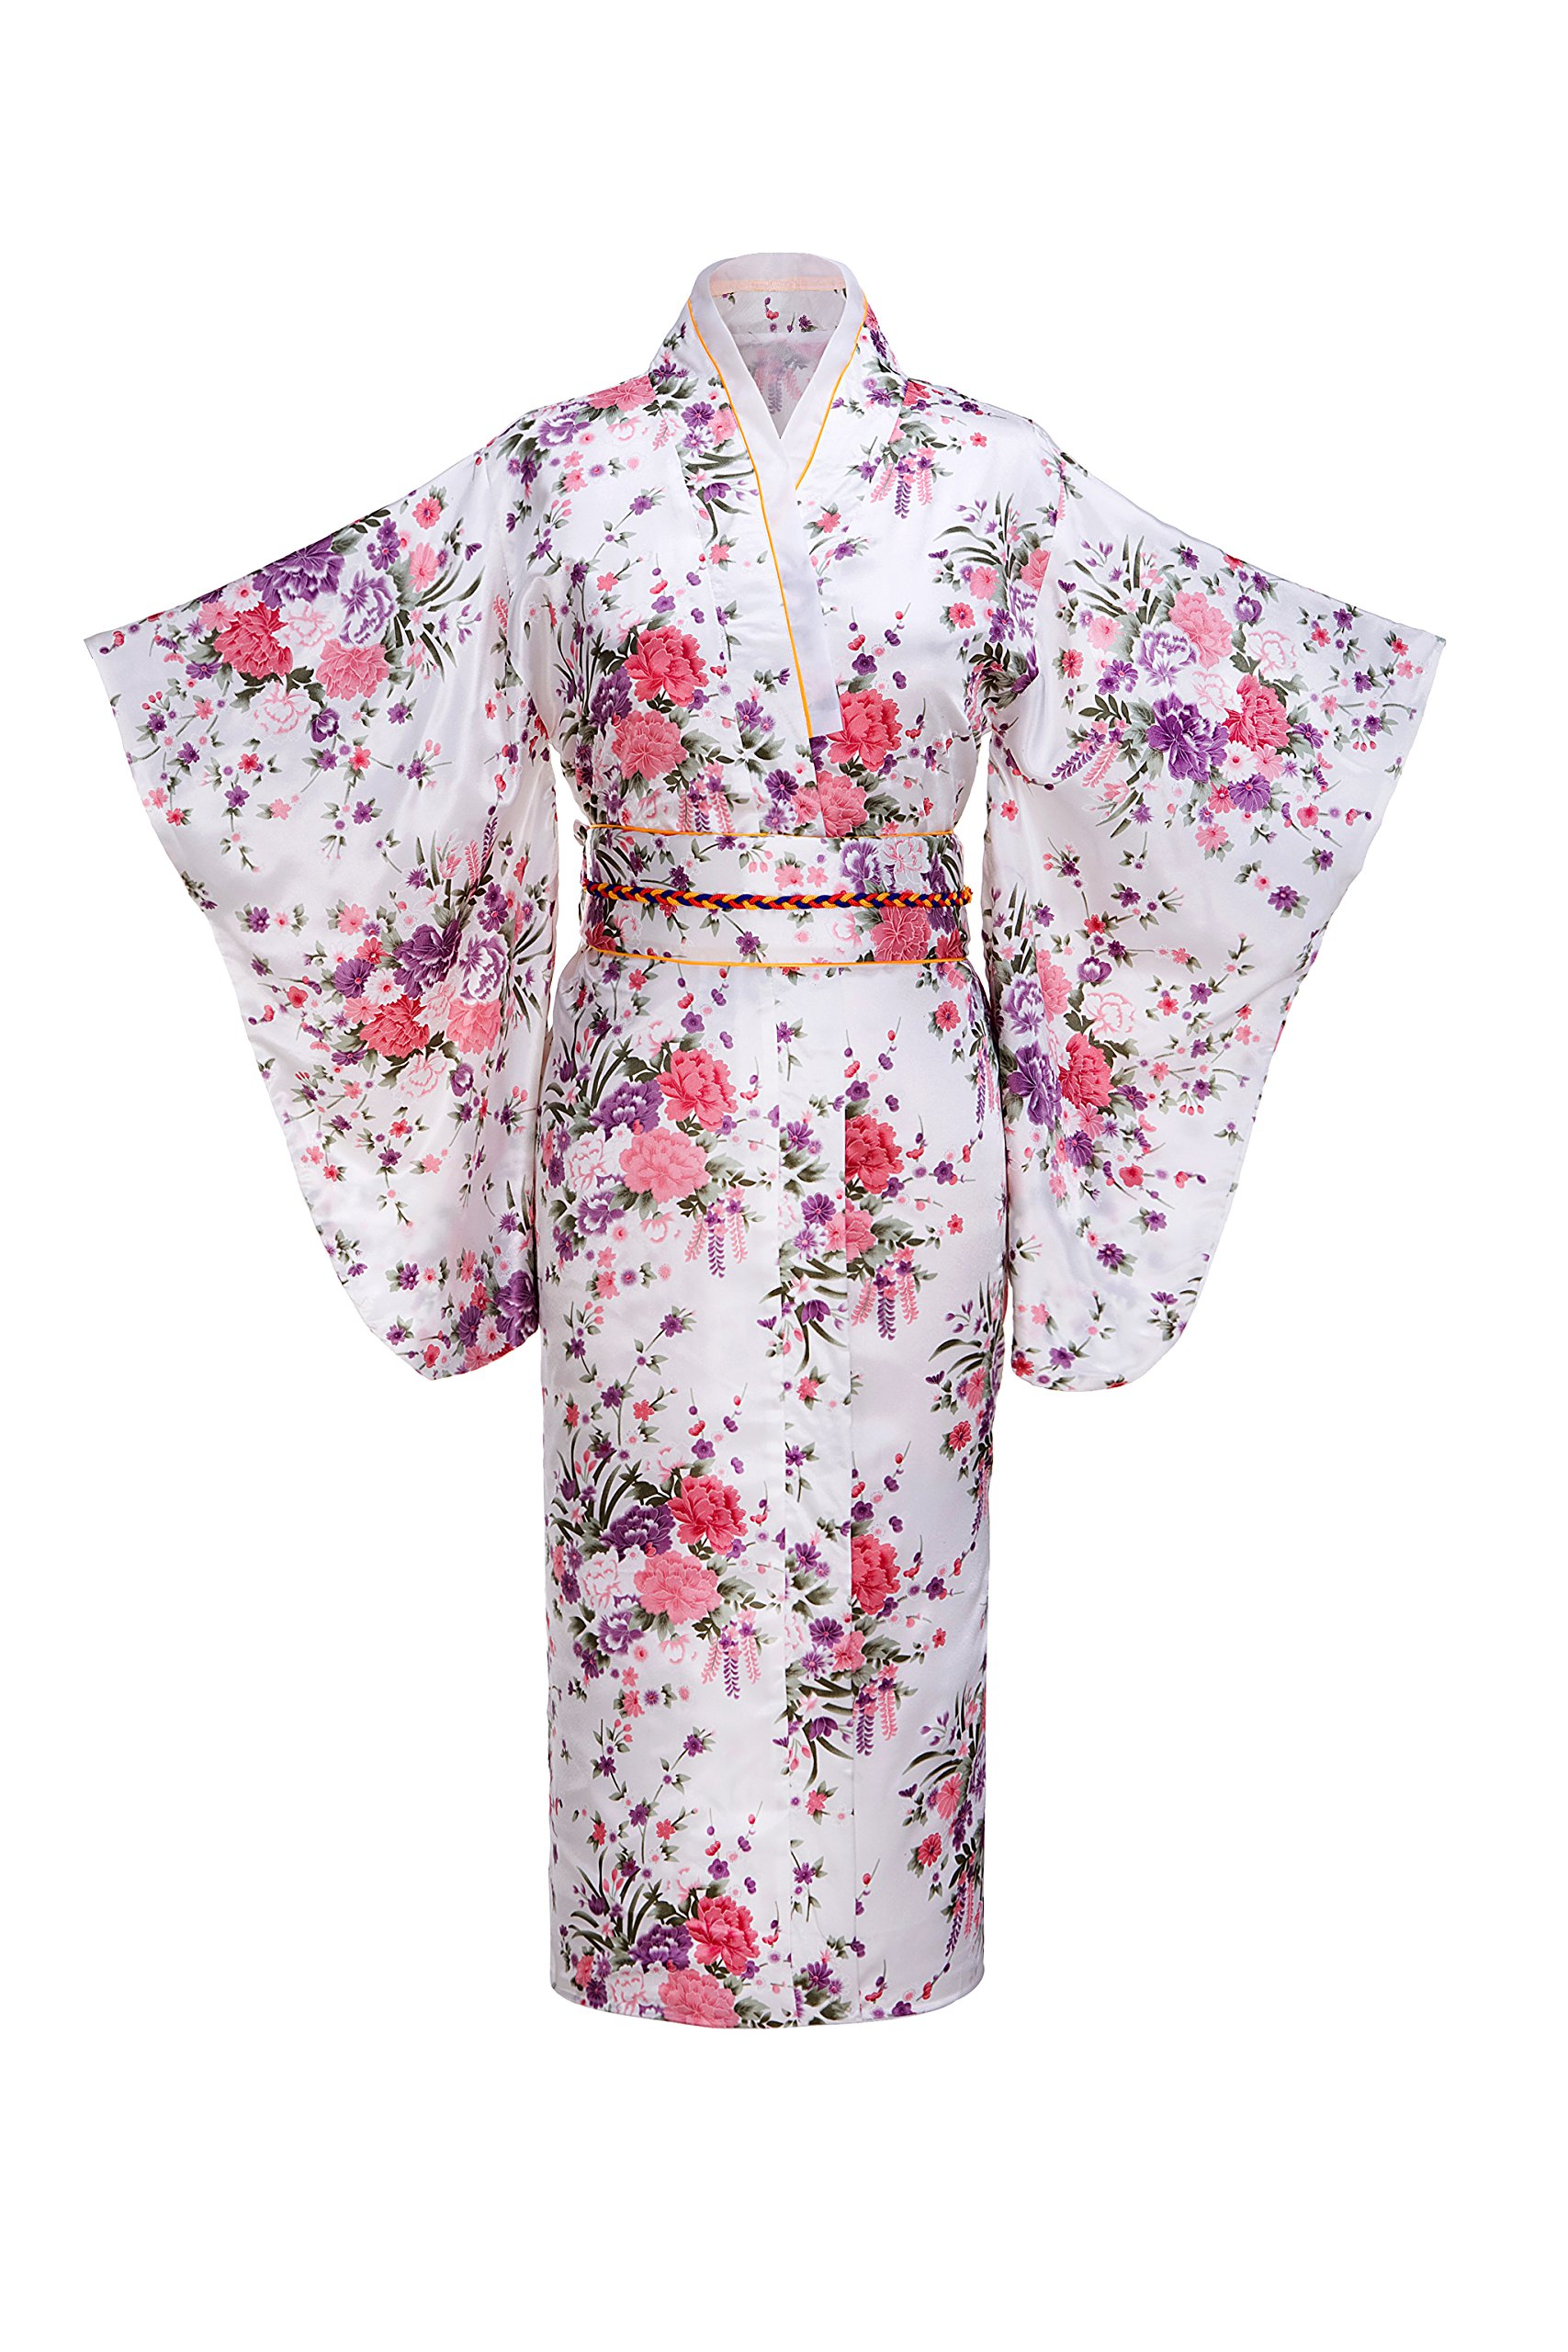 Old-to-new Women's Silk Traditional Japanese Kimono Robe With Floral Print White A